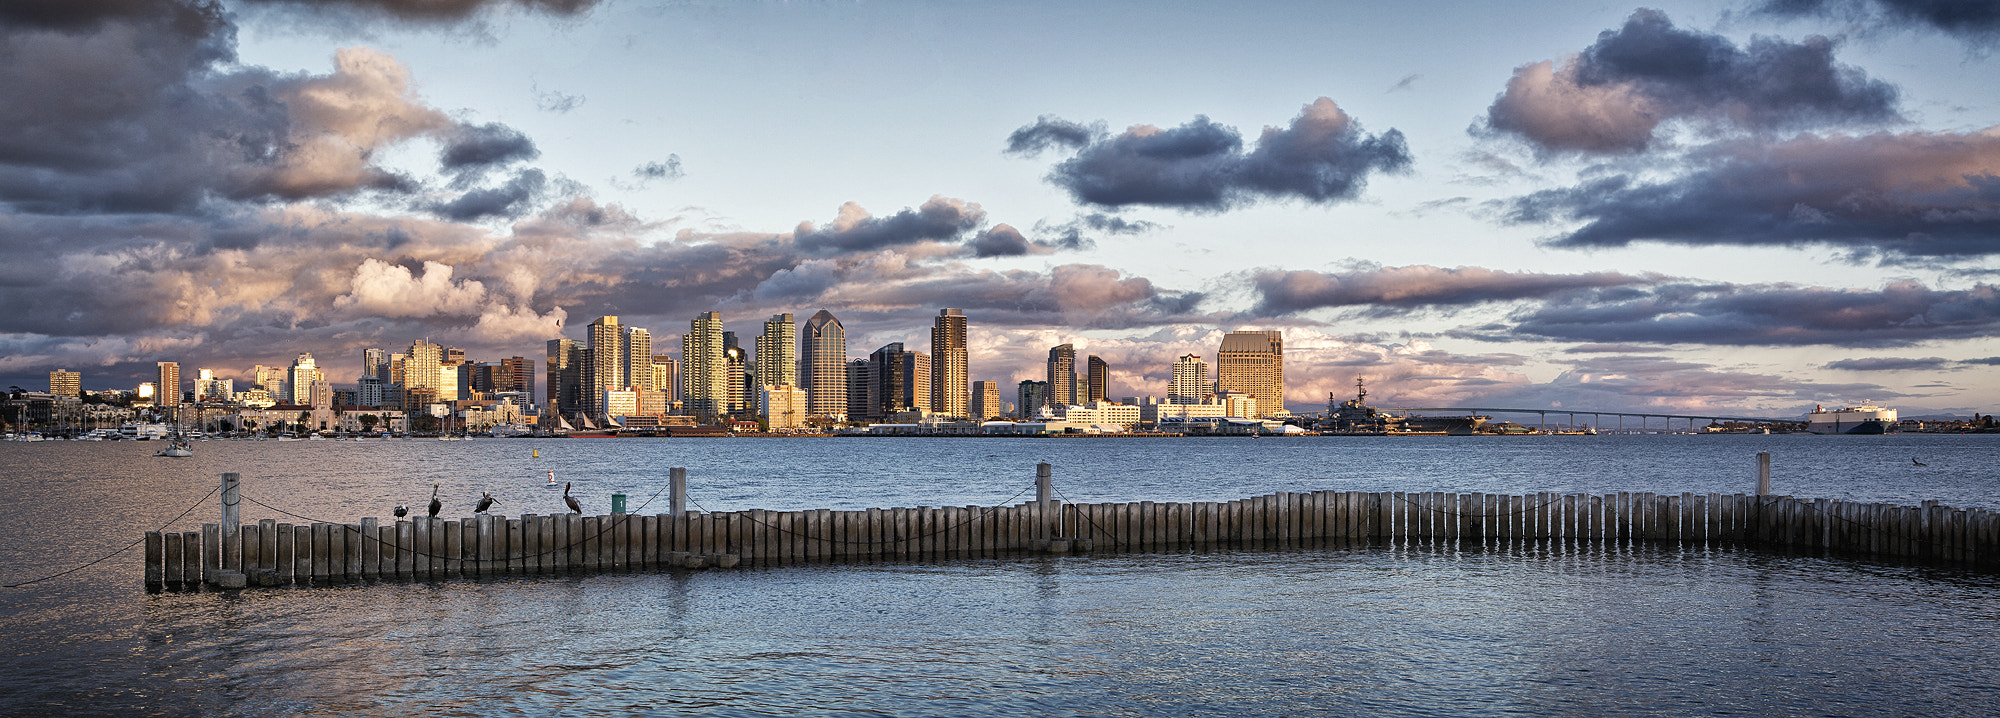 Photograph Downtown San Diego Pano by Daniel Seeks on 500px